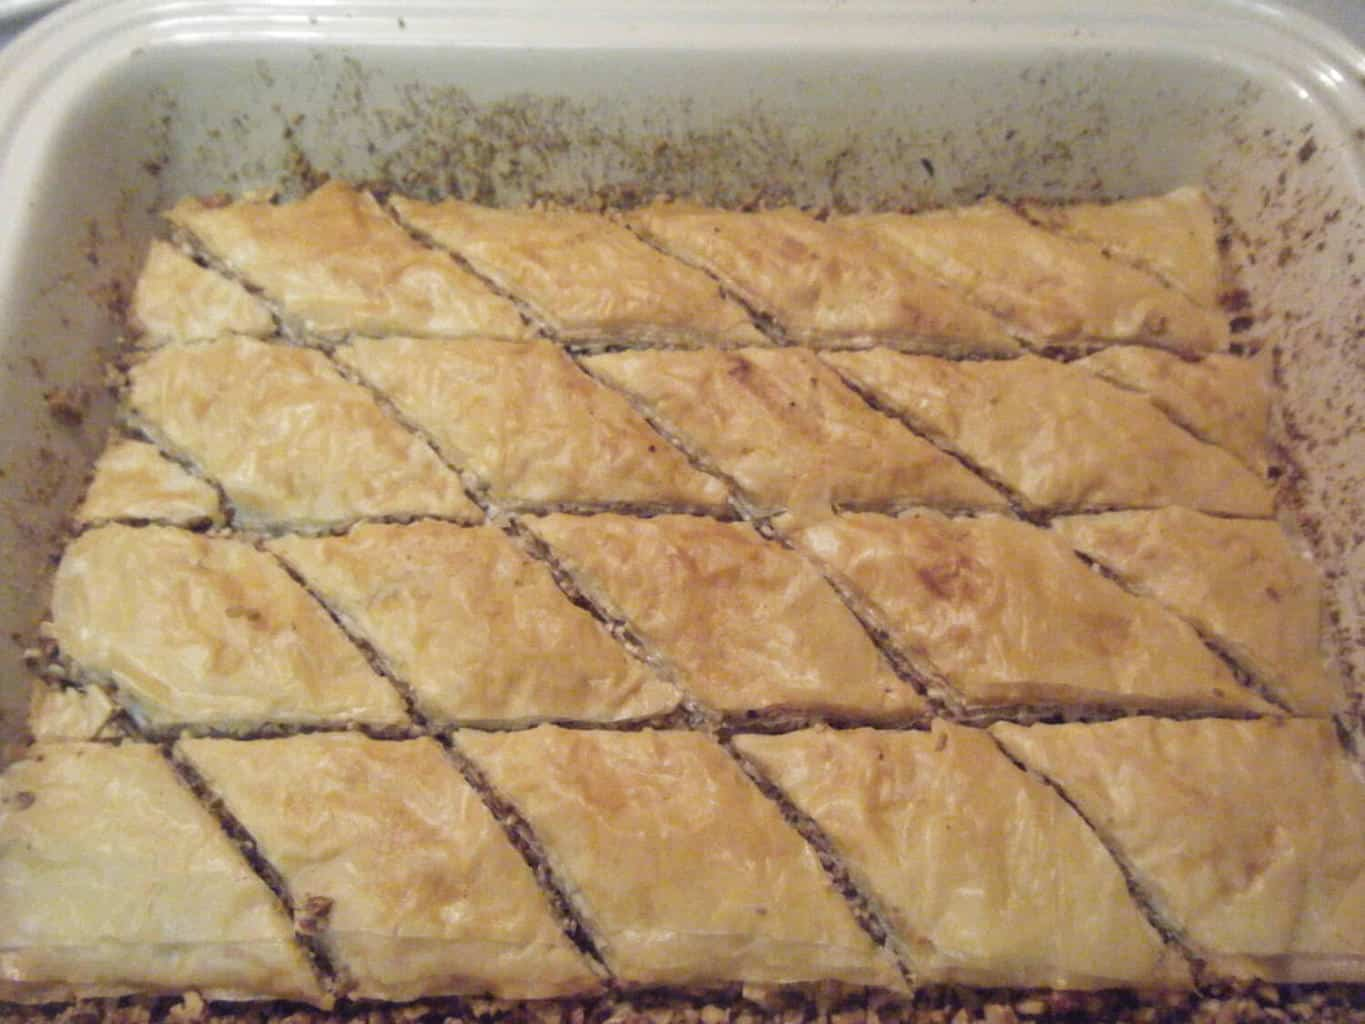 homemade Baklava baked to a golden brown